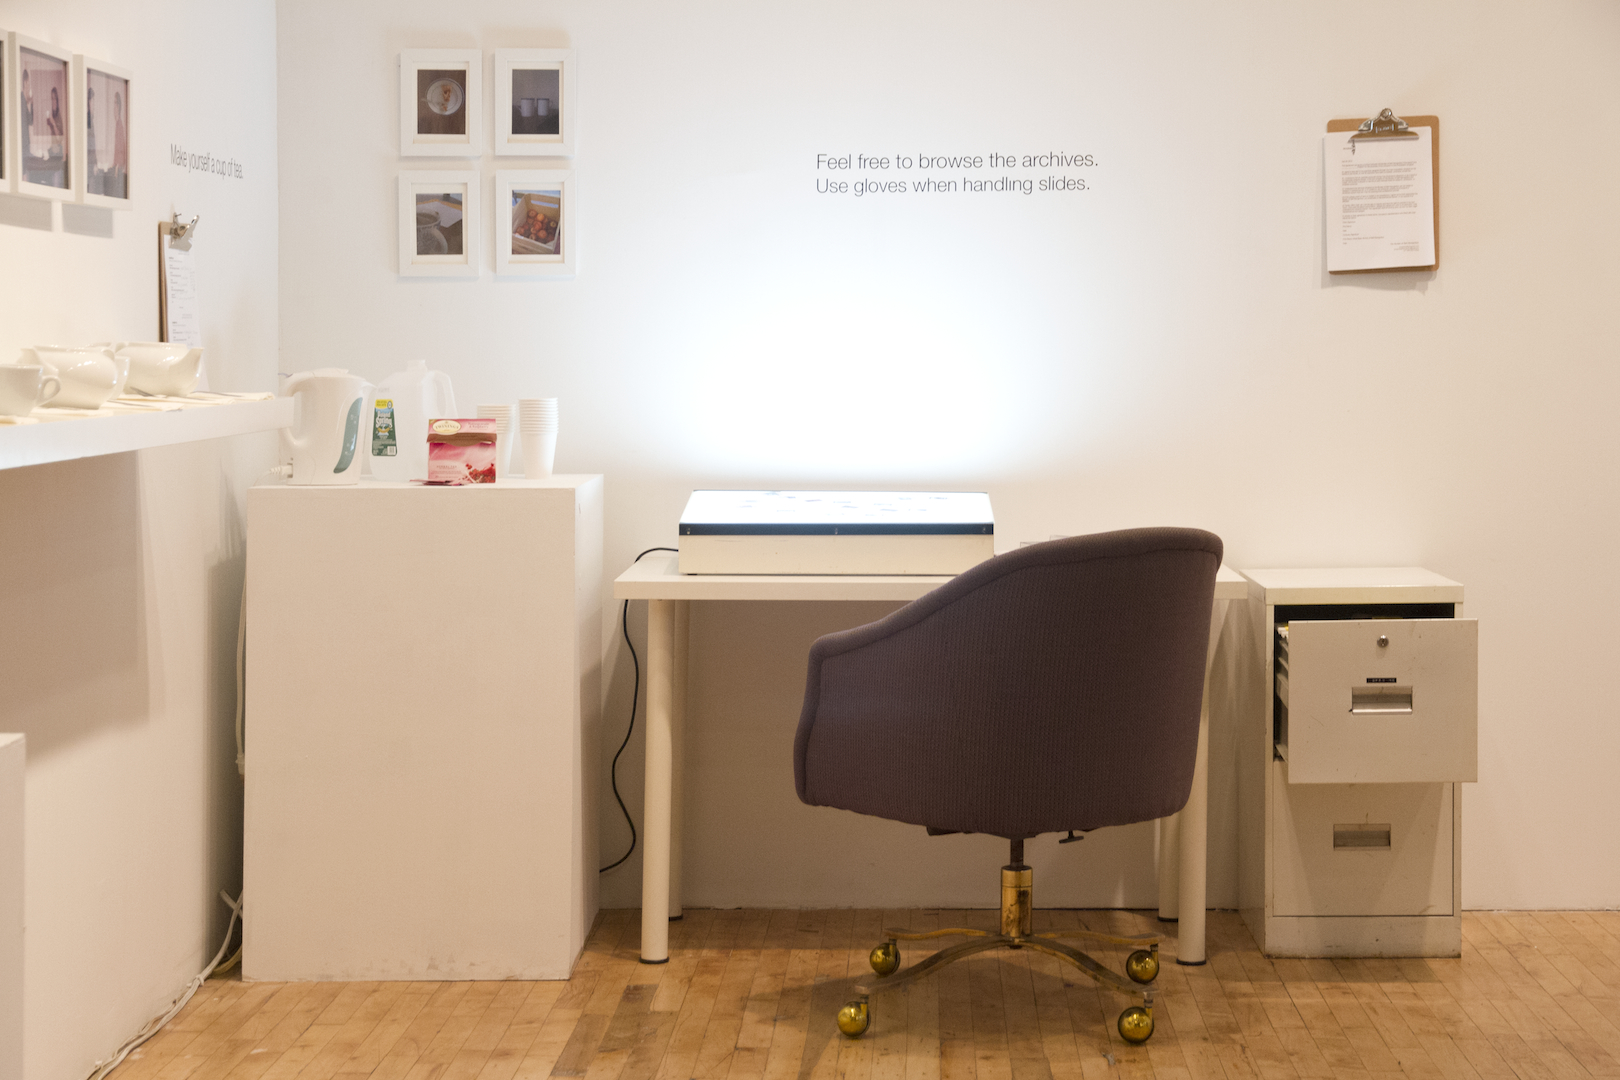 Installation View: Archive